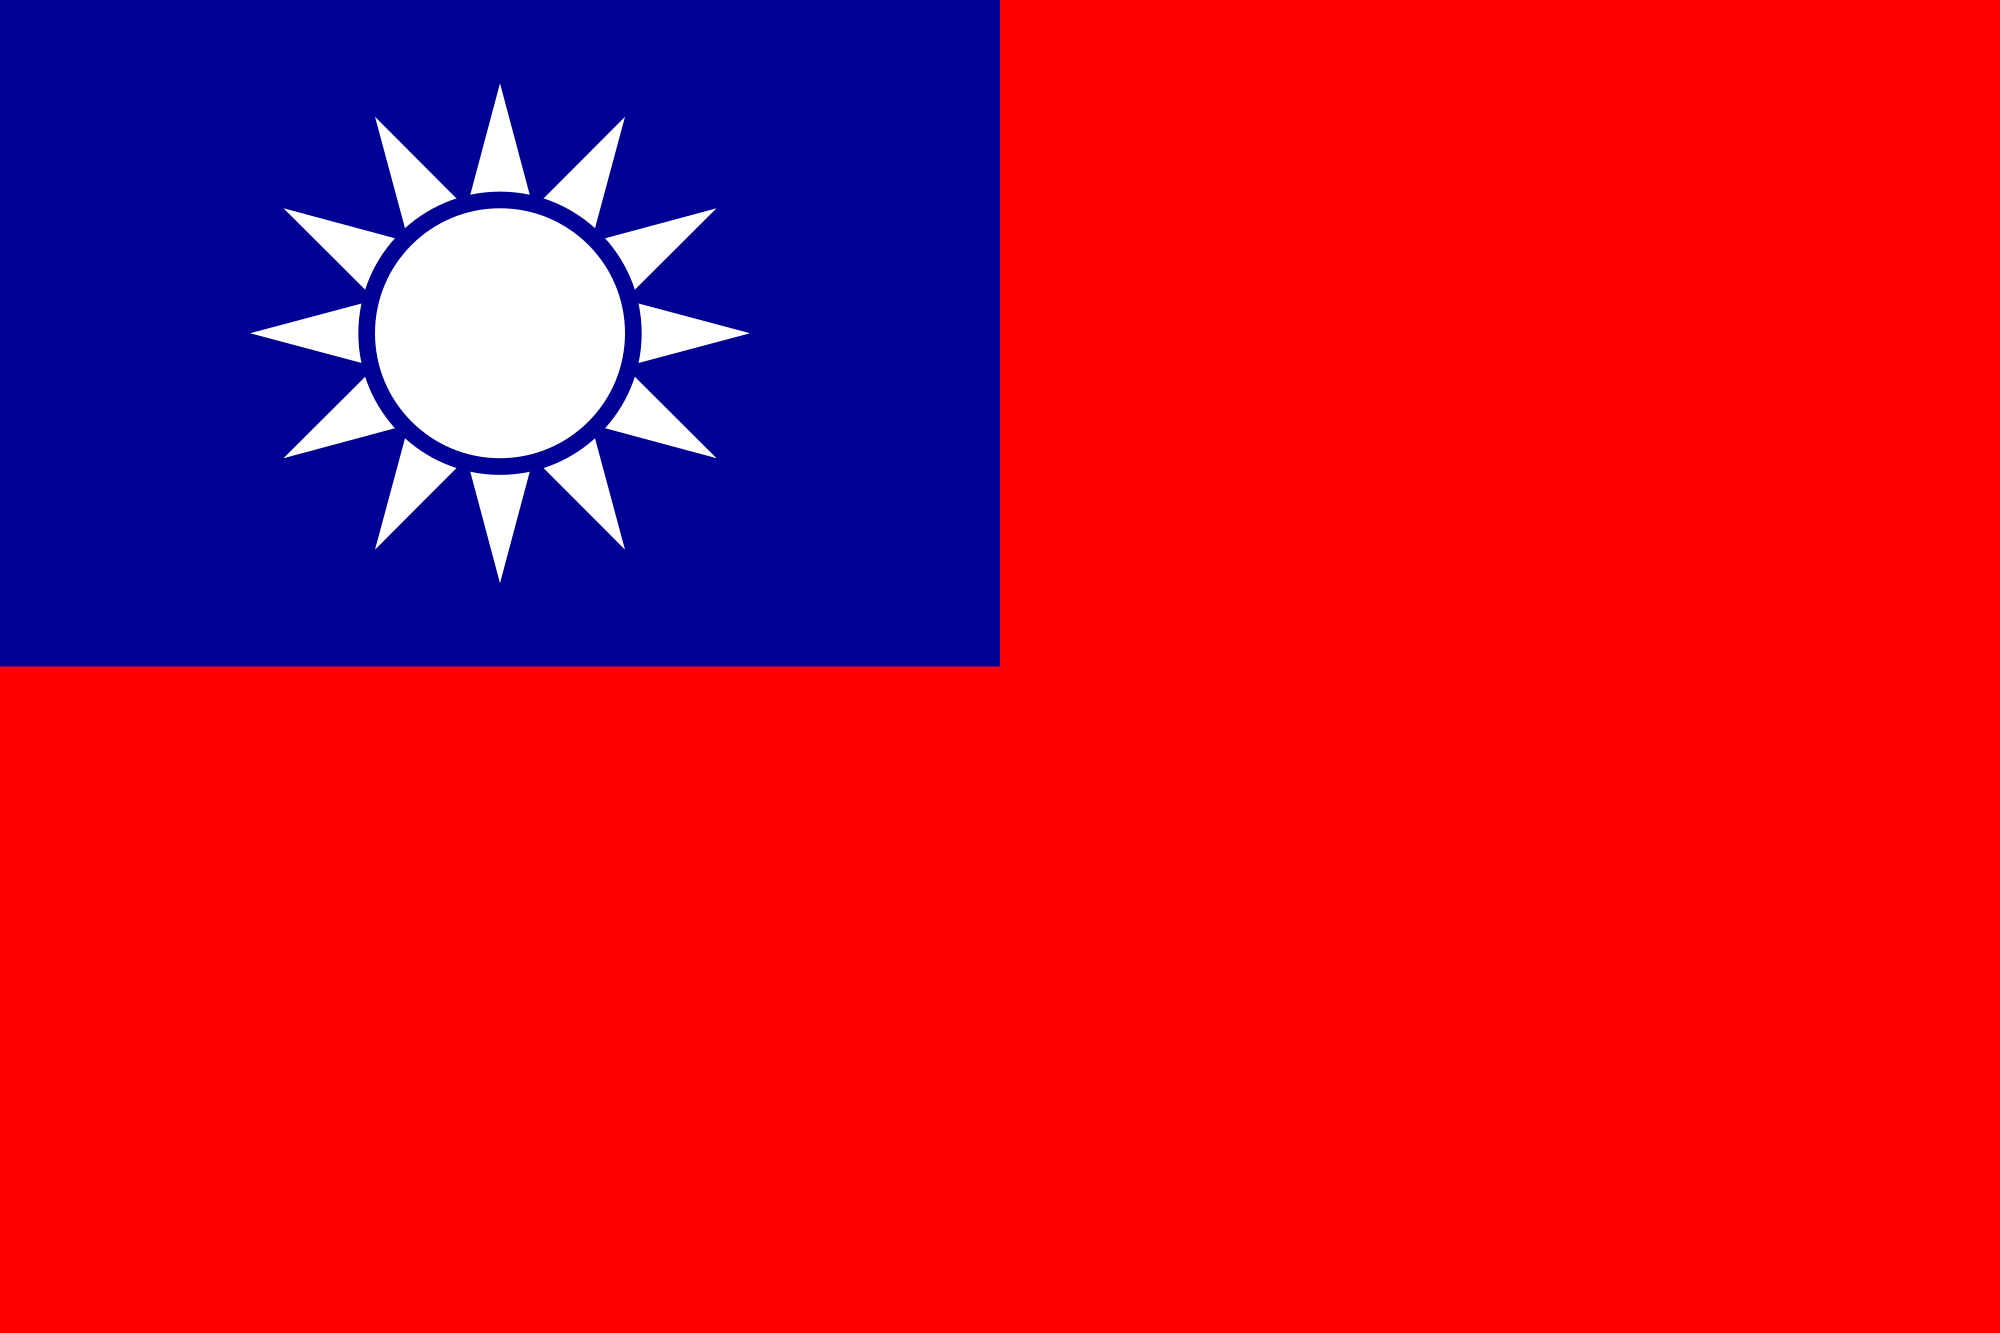 2000px-Flag_of_the_Republic_of_China